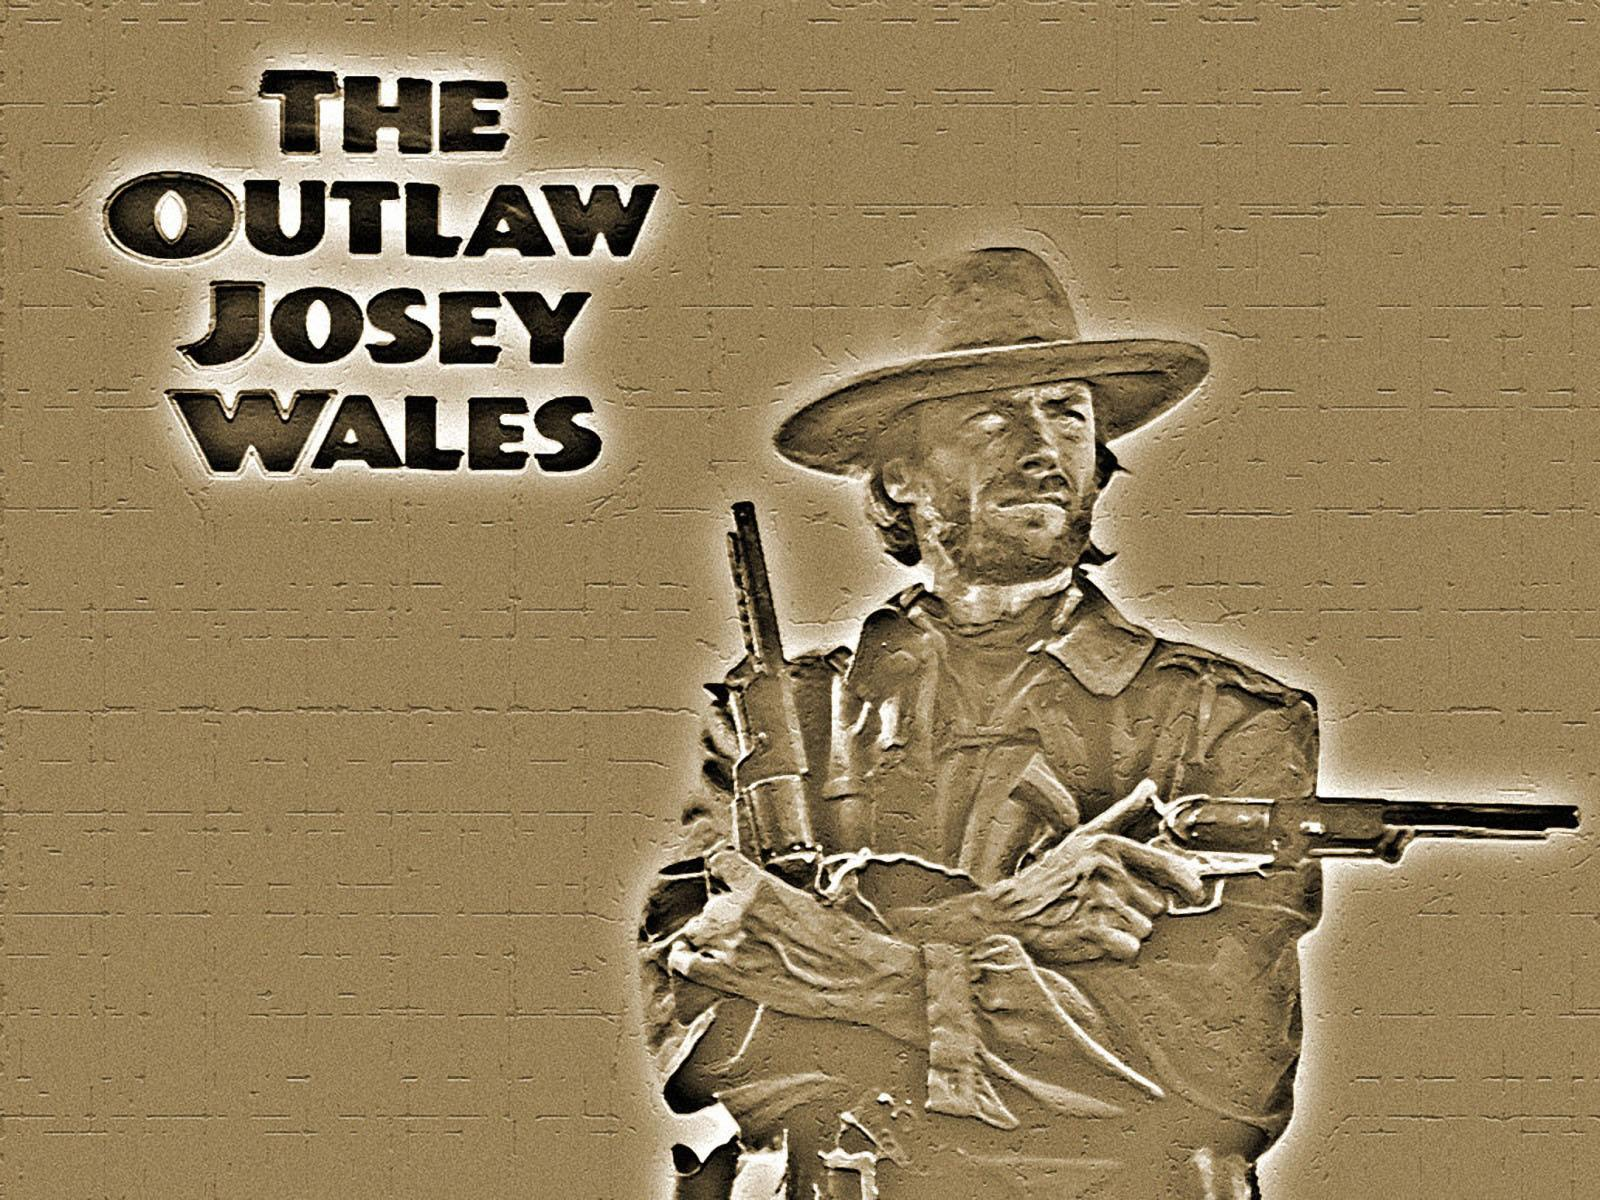 Outlaw Josey Wales Wallpapers - Top Free Outlaw Josey Wales